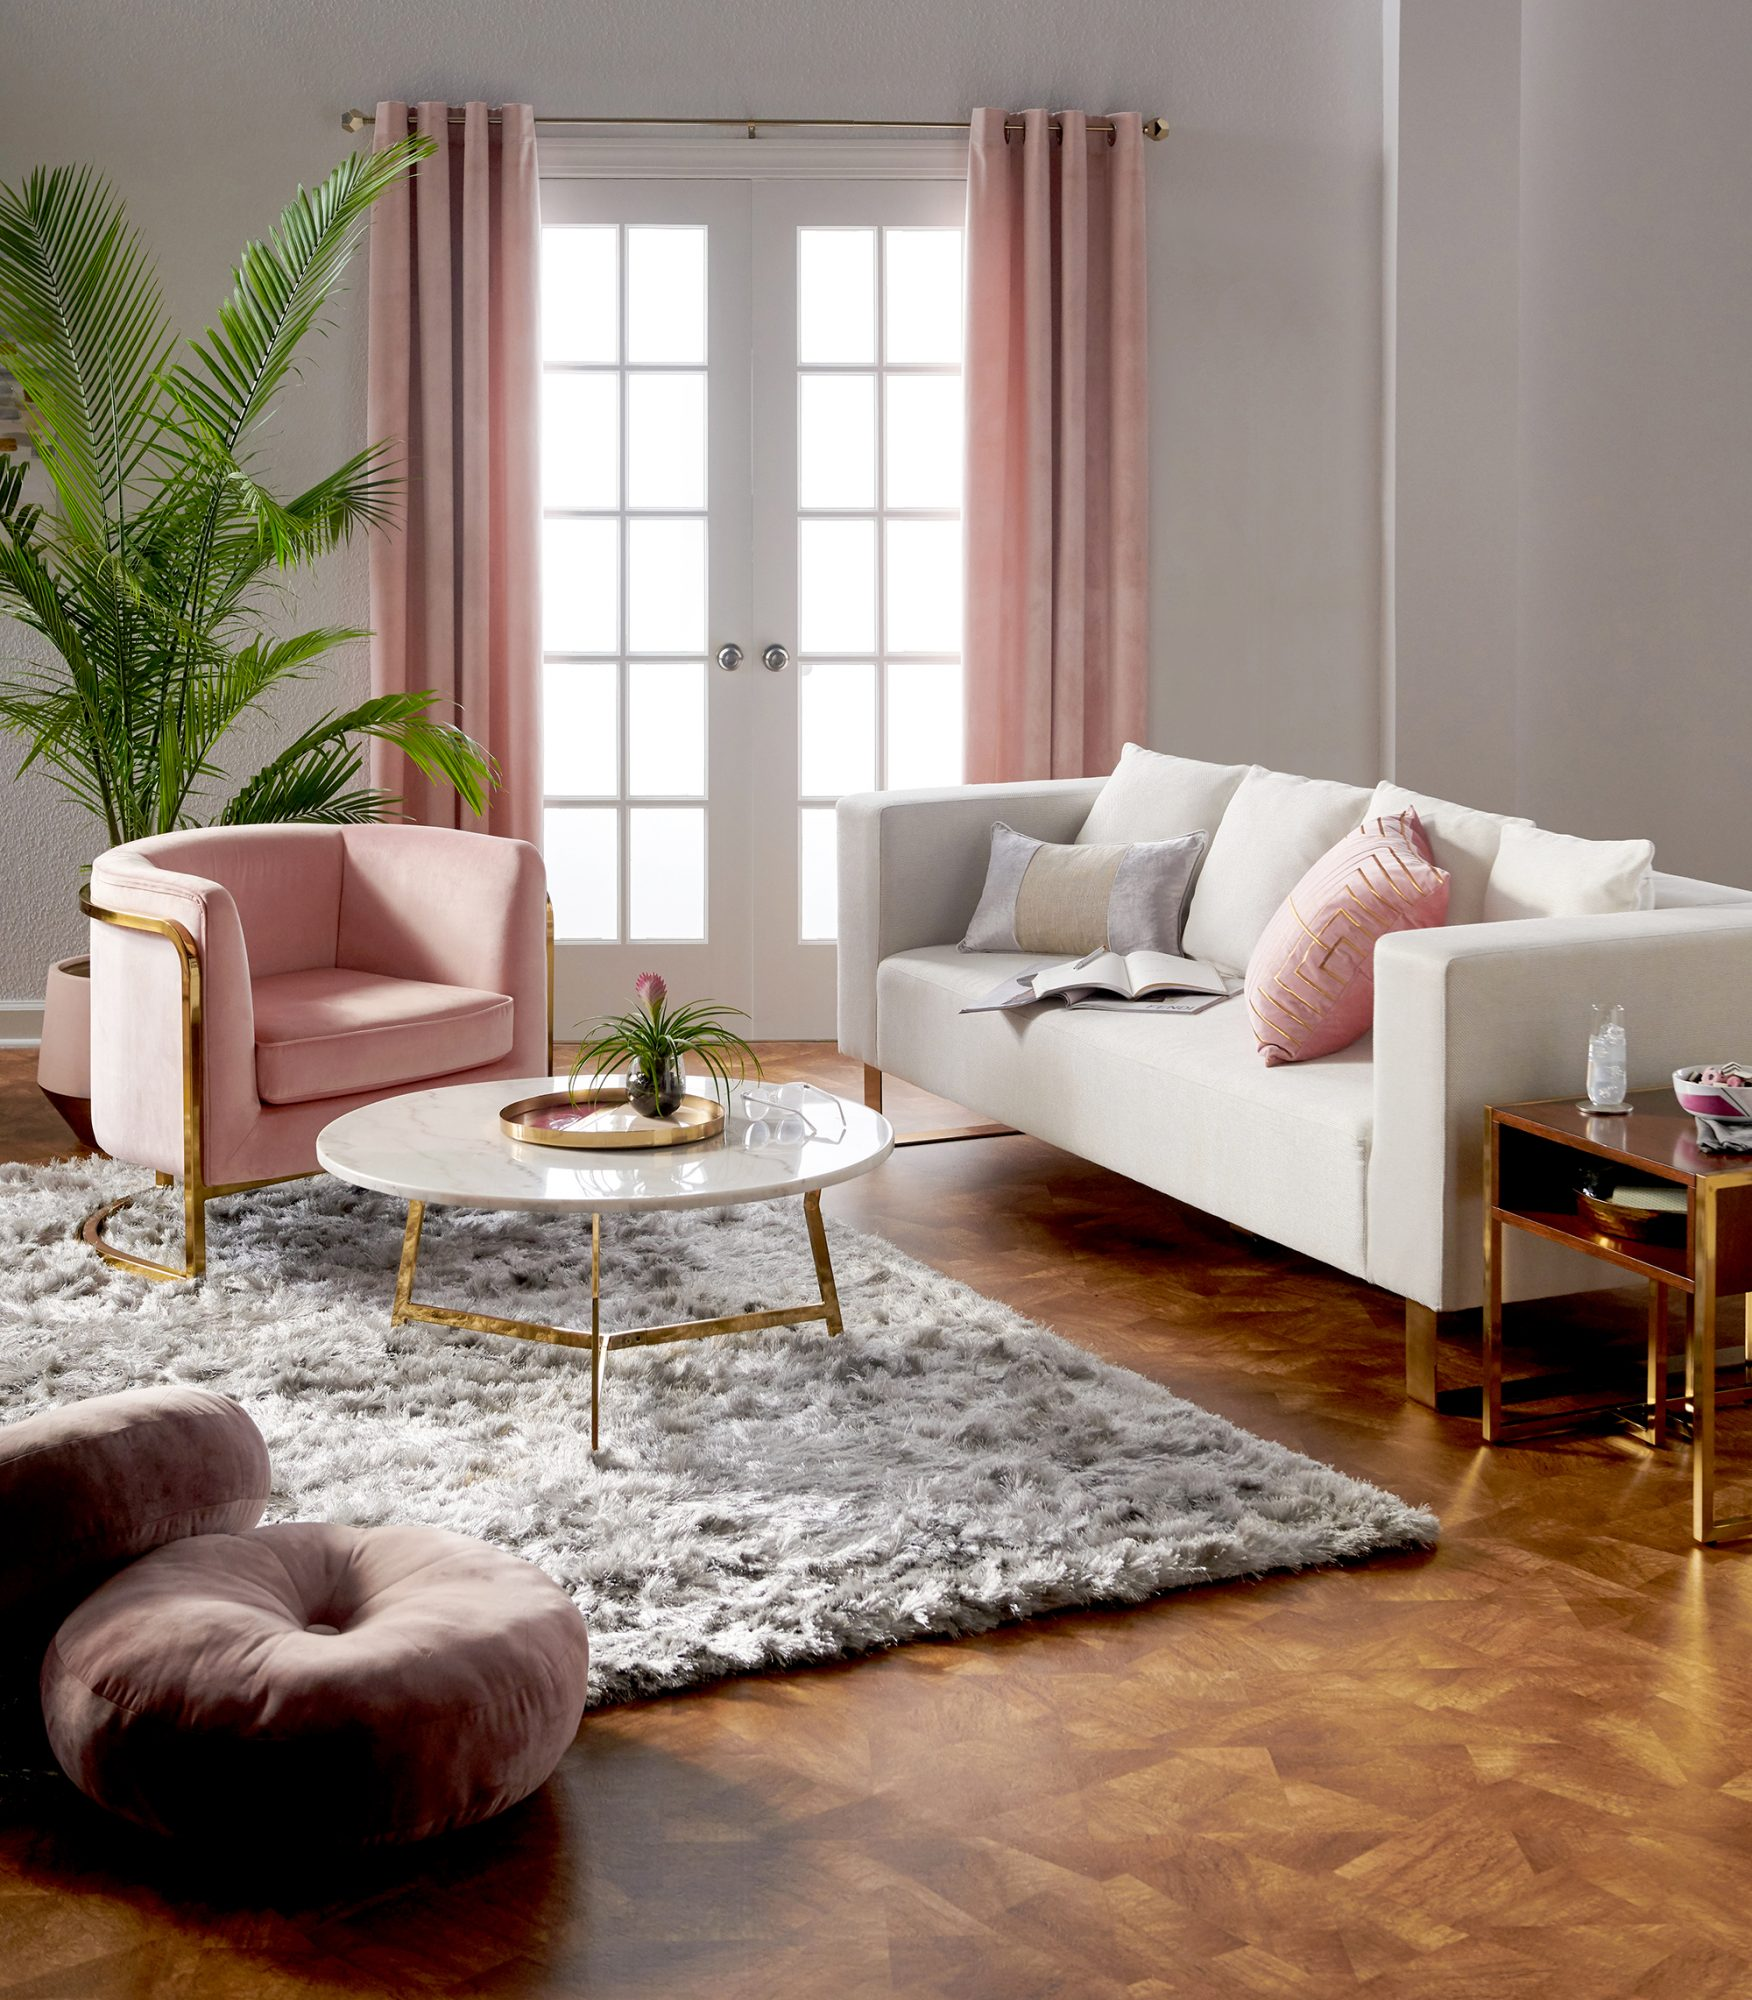 Walmart Just Blew Us Away With Its New Furniture Line (Spoiler: It's Really Chic)